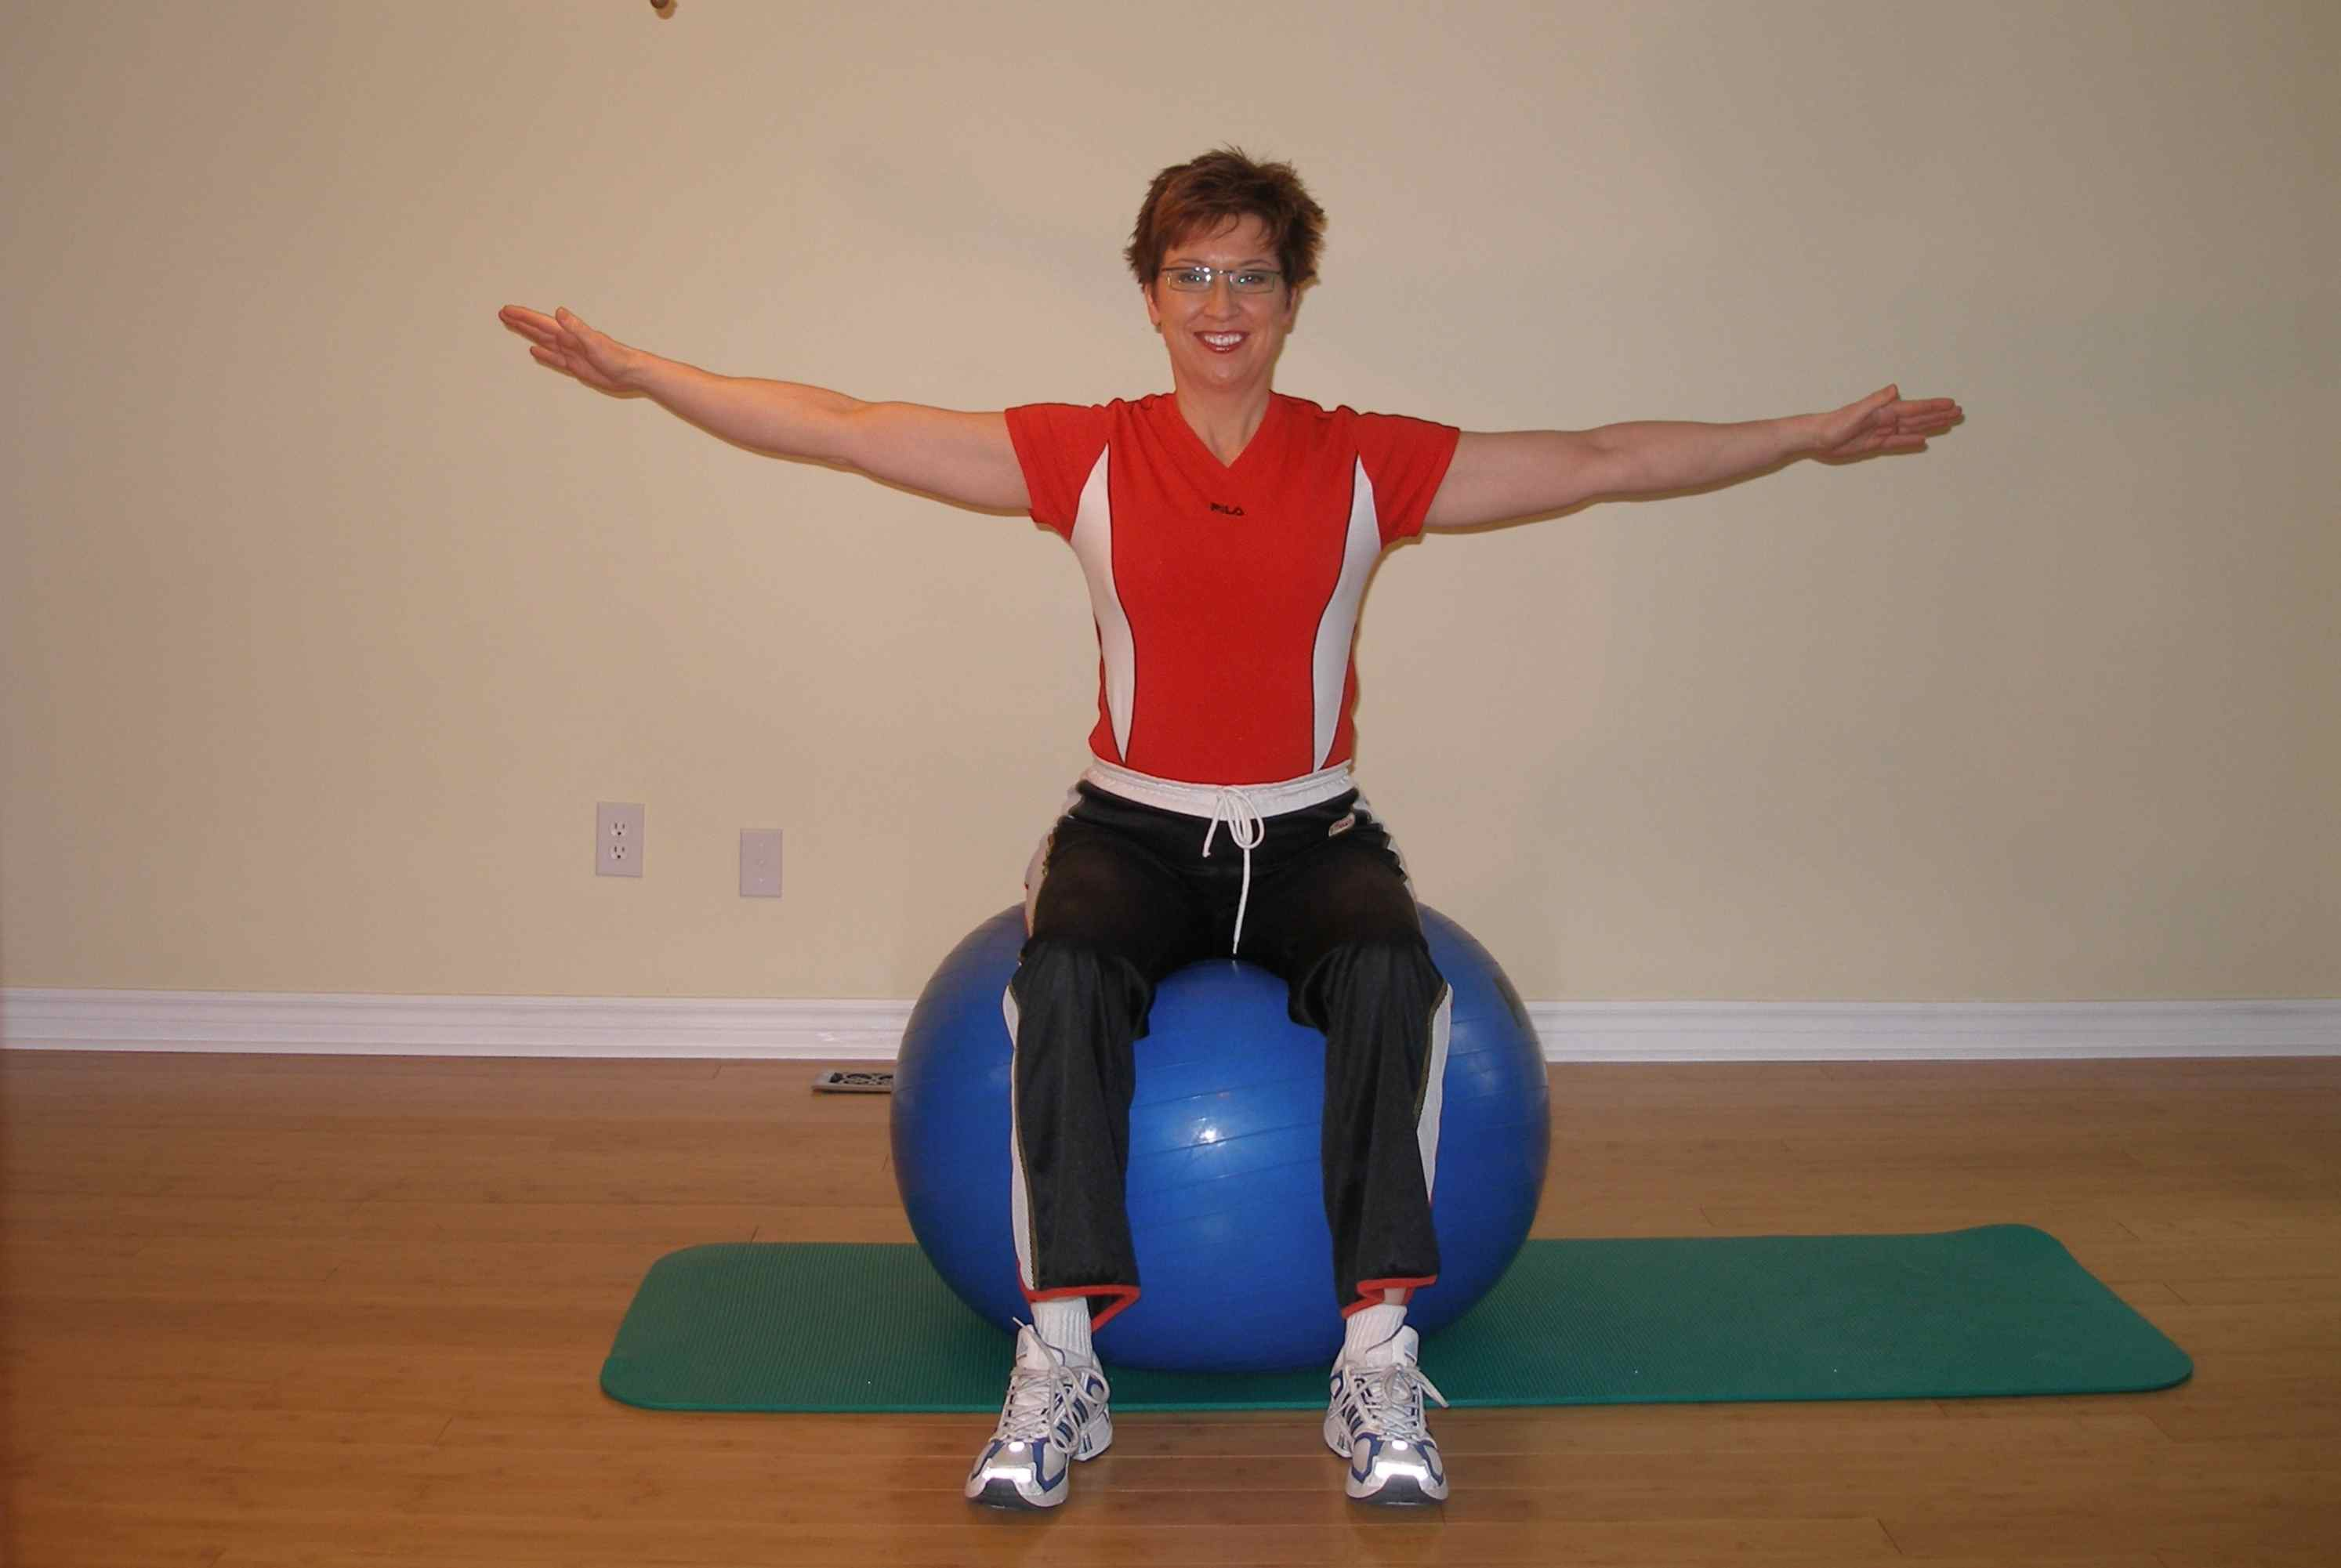 bilateral leg raise on the exercise ball start